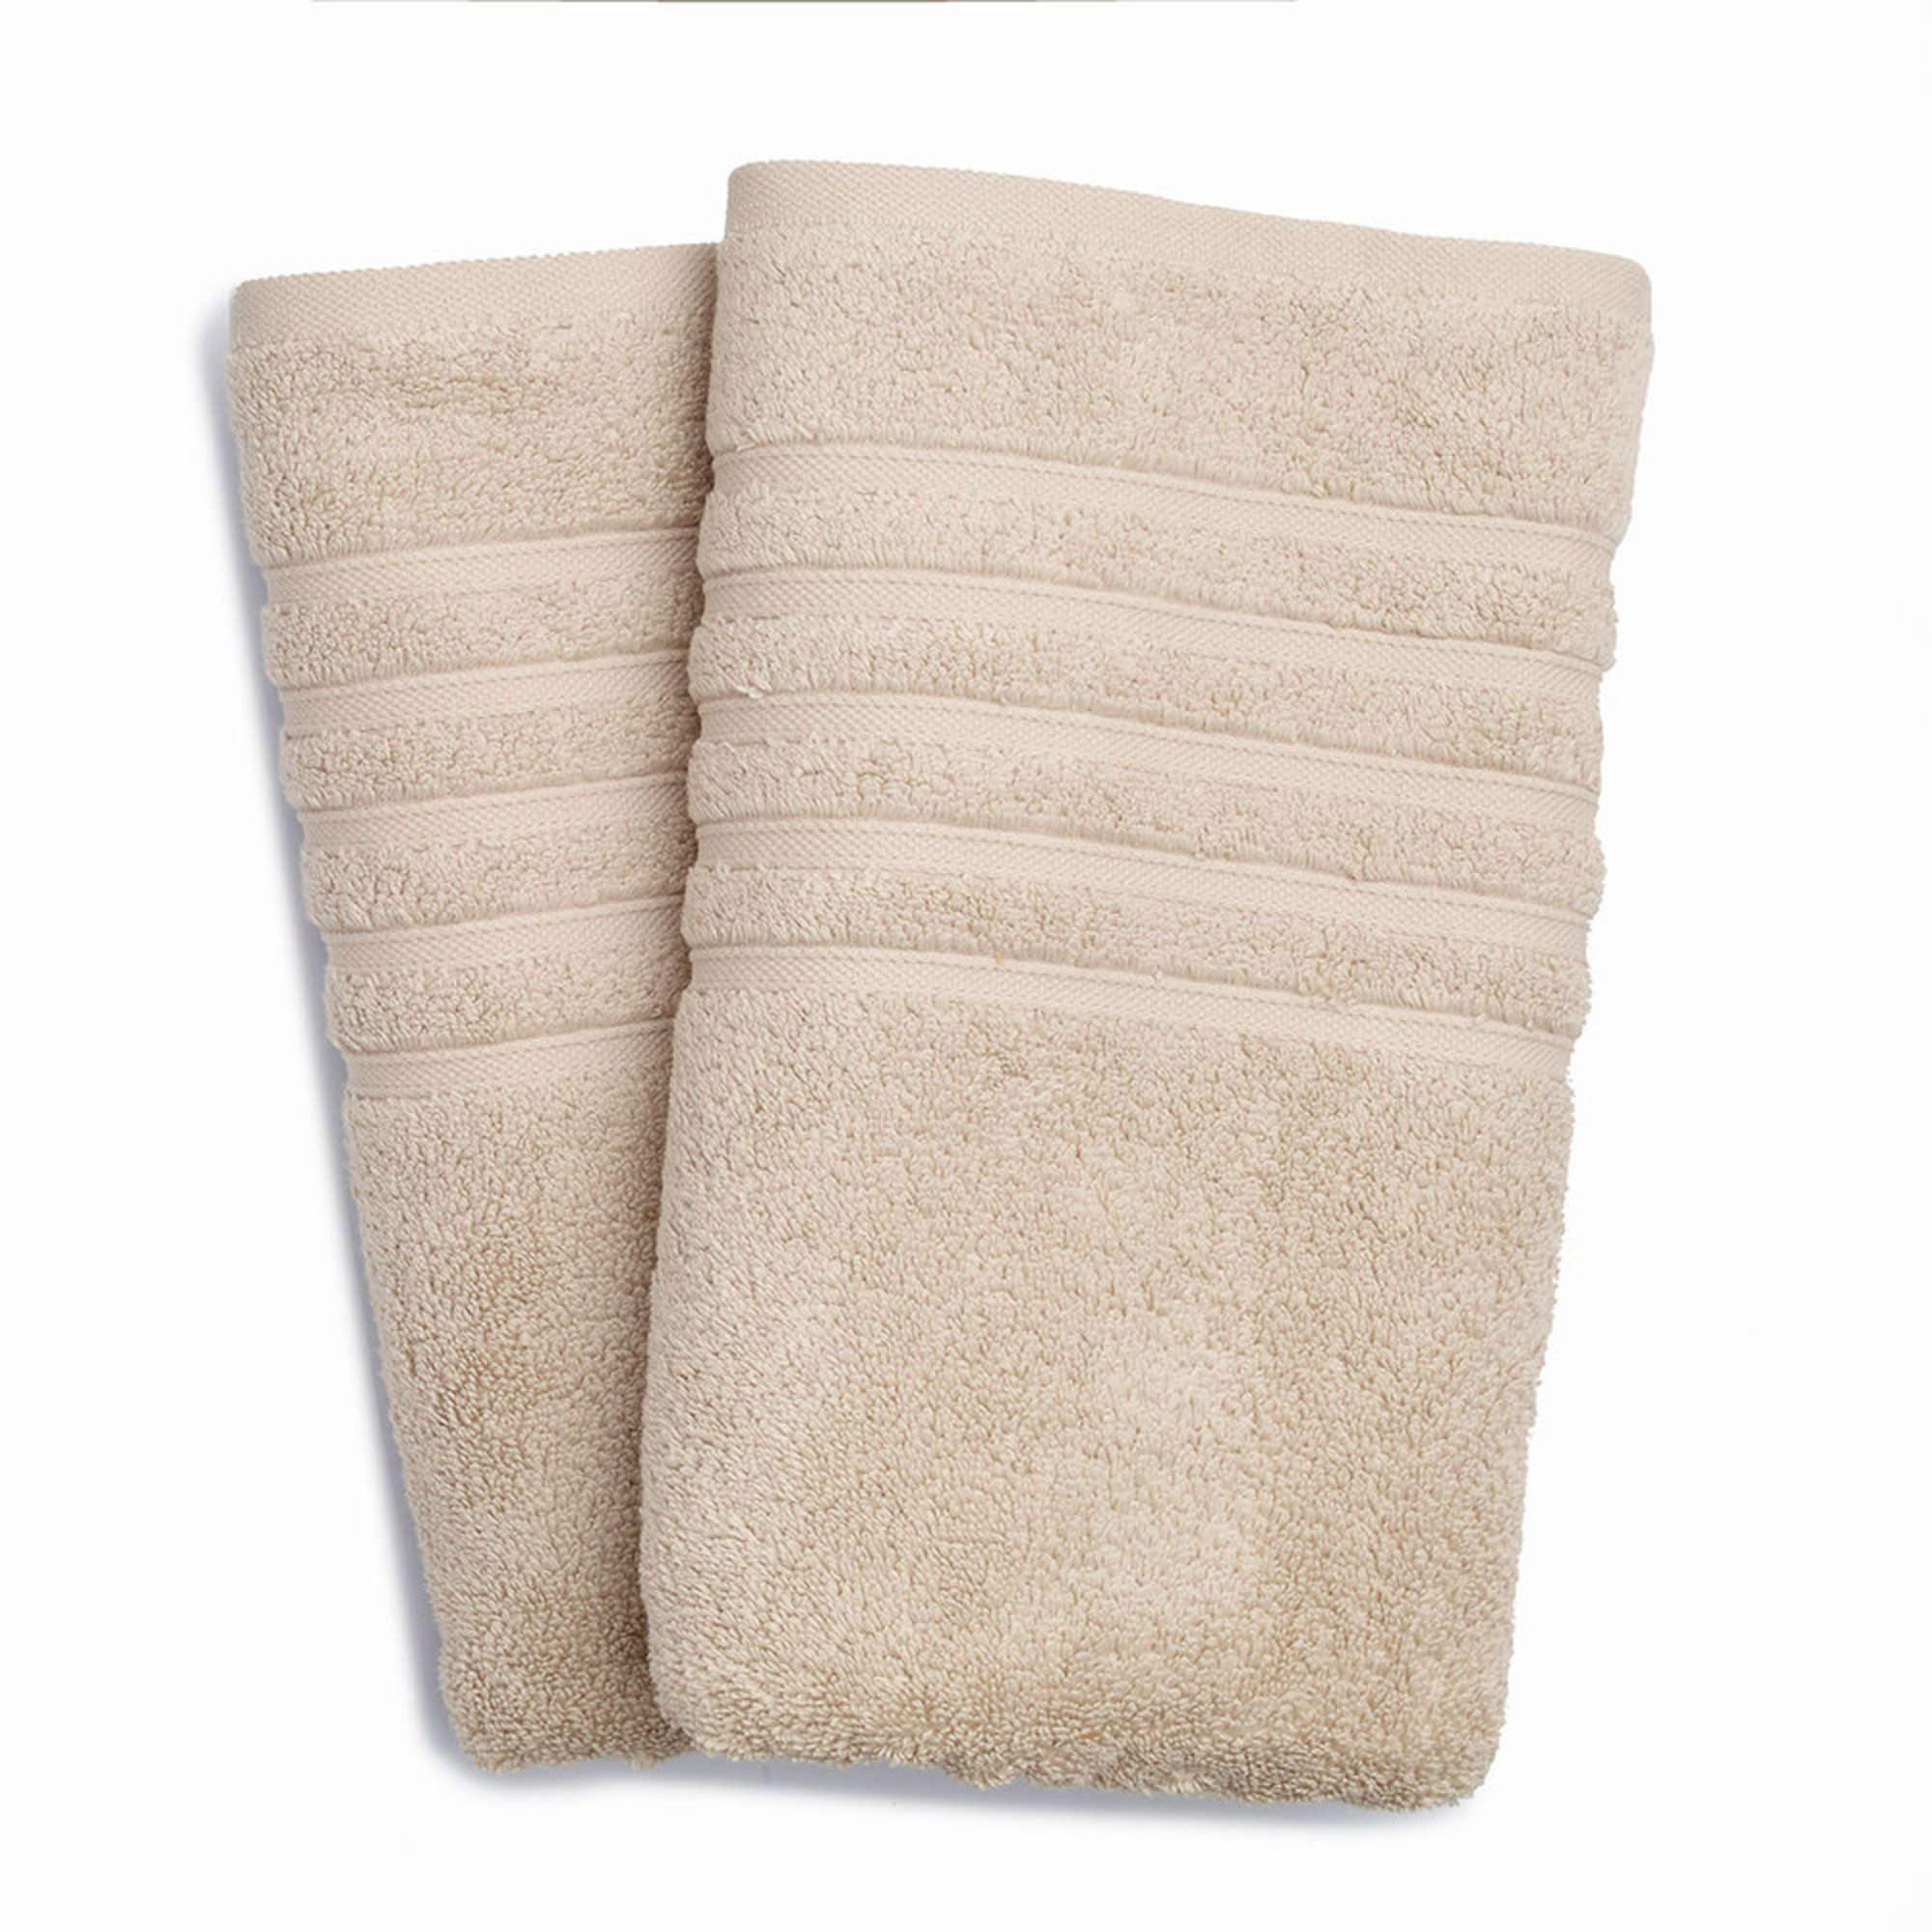 hotel collection towels hotel collection microcotton bath towel oat bath towels 31429